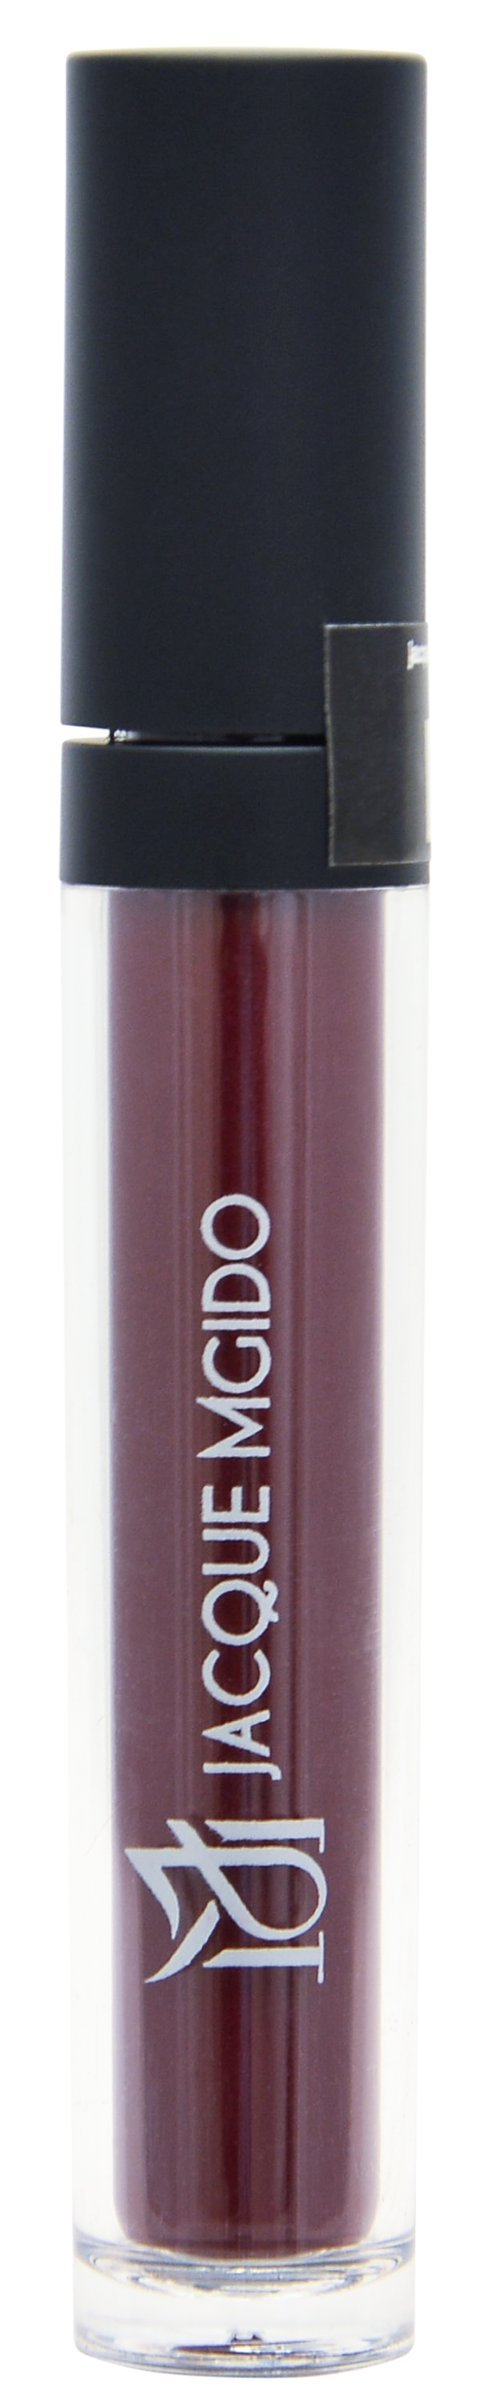 Jacque Mgido Cosmetics - Diva (Red/Burgundy) Crack Free Lip Stain, Matte Finish - 0.18 Ounce (Pack of 1)